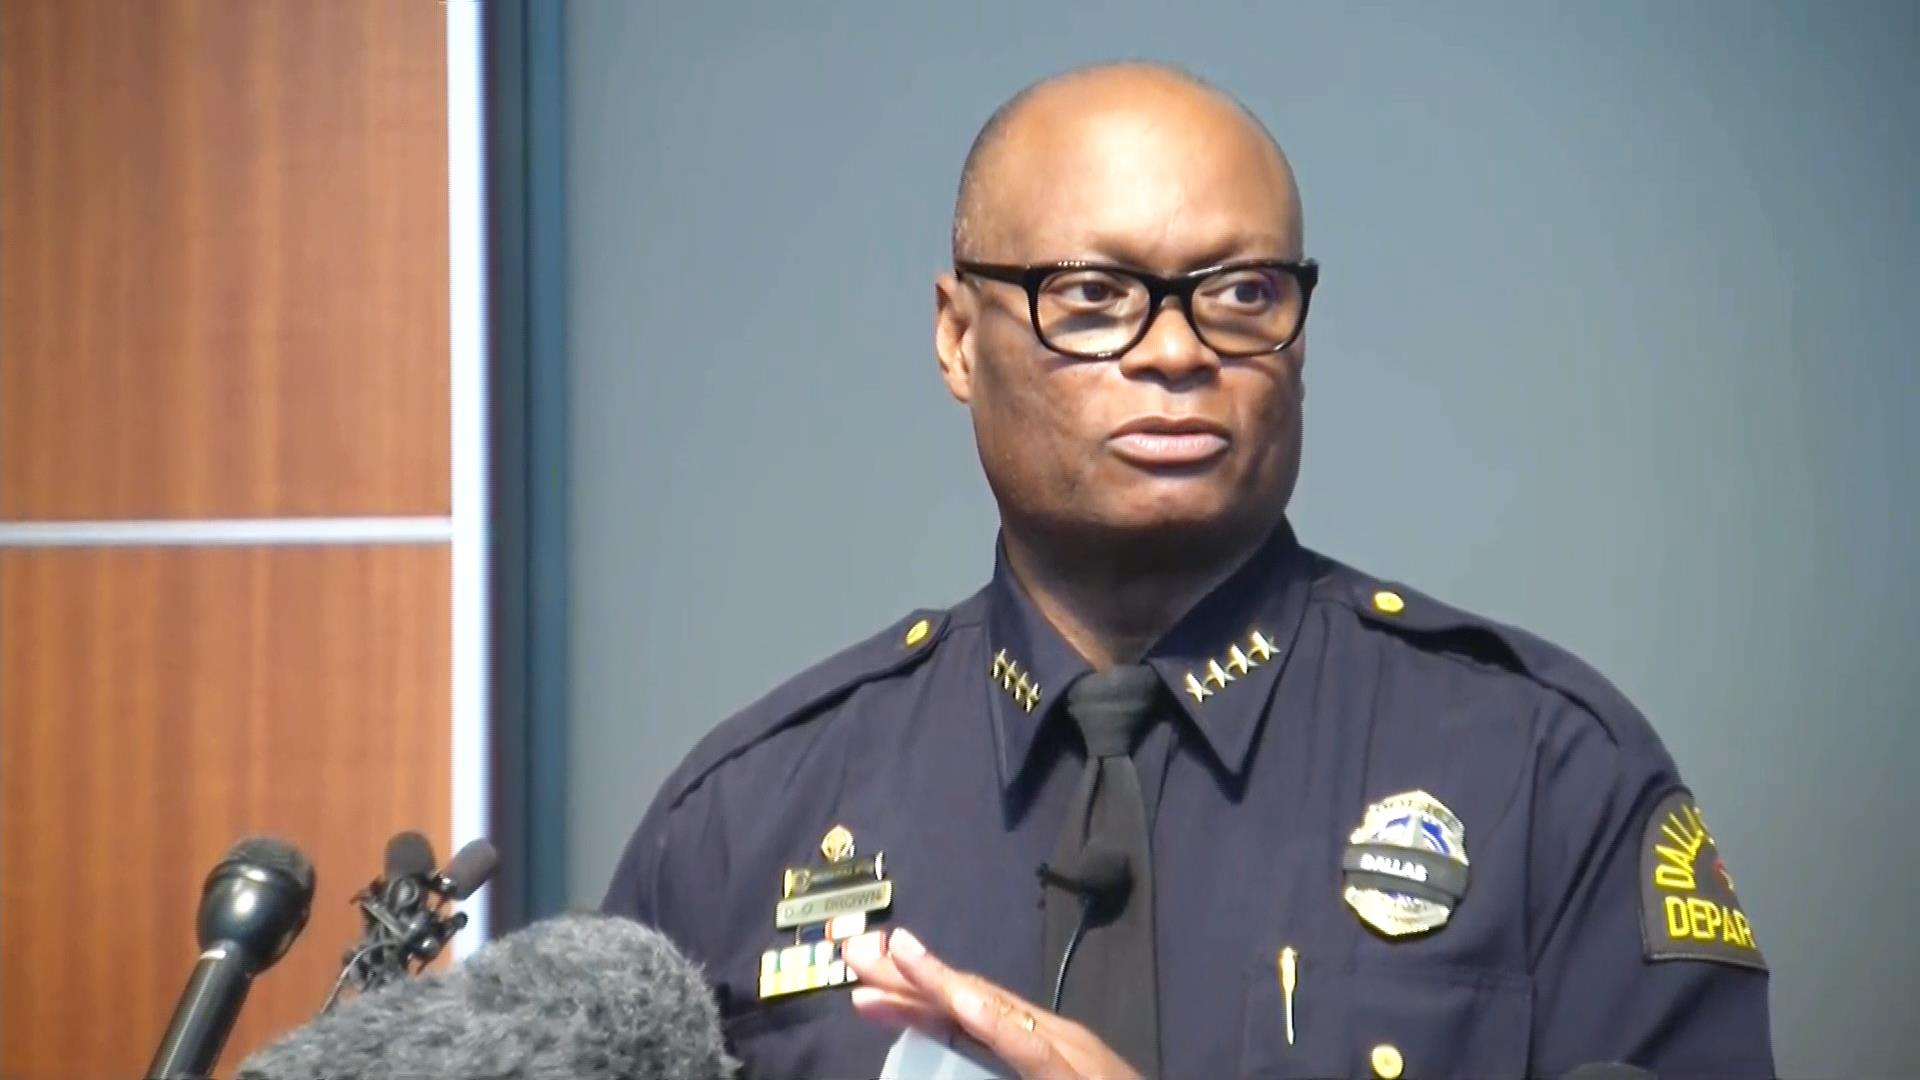 Dallas Police Chief David Brown Faces Toughest Challenge of Difficult Career